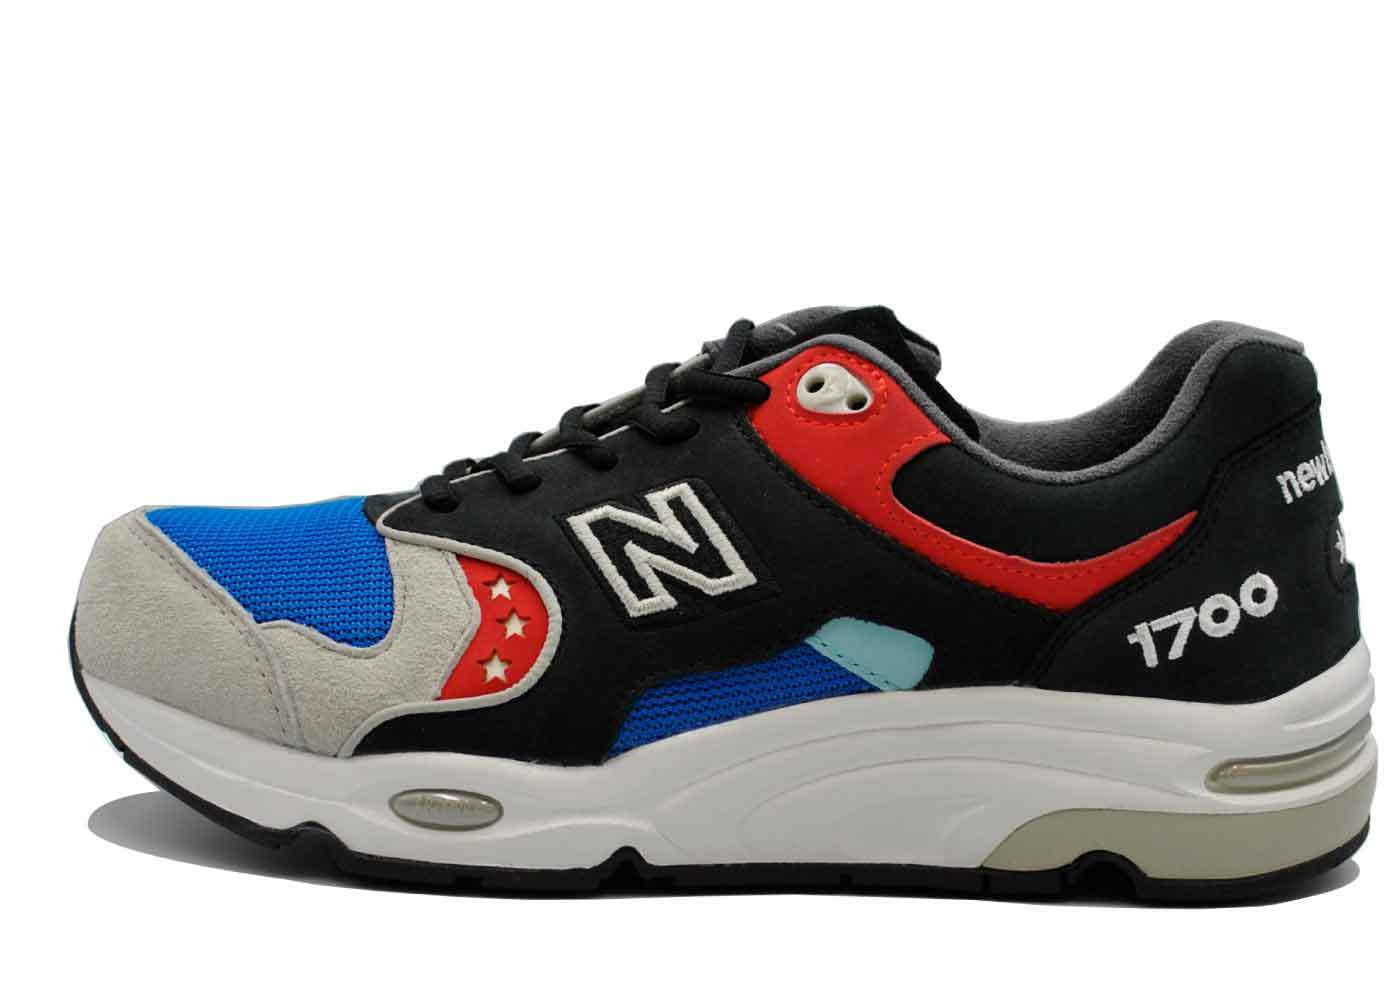 New Balance × Whiz Limited × Mita Sneakers CM1700の写真